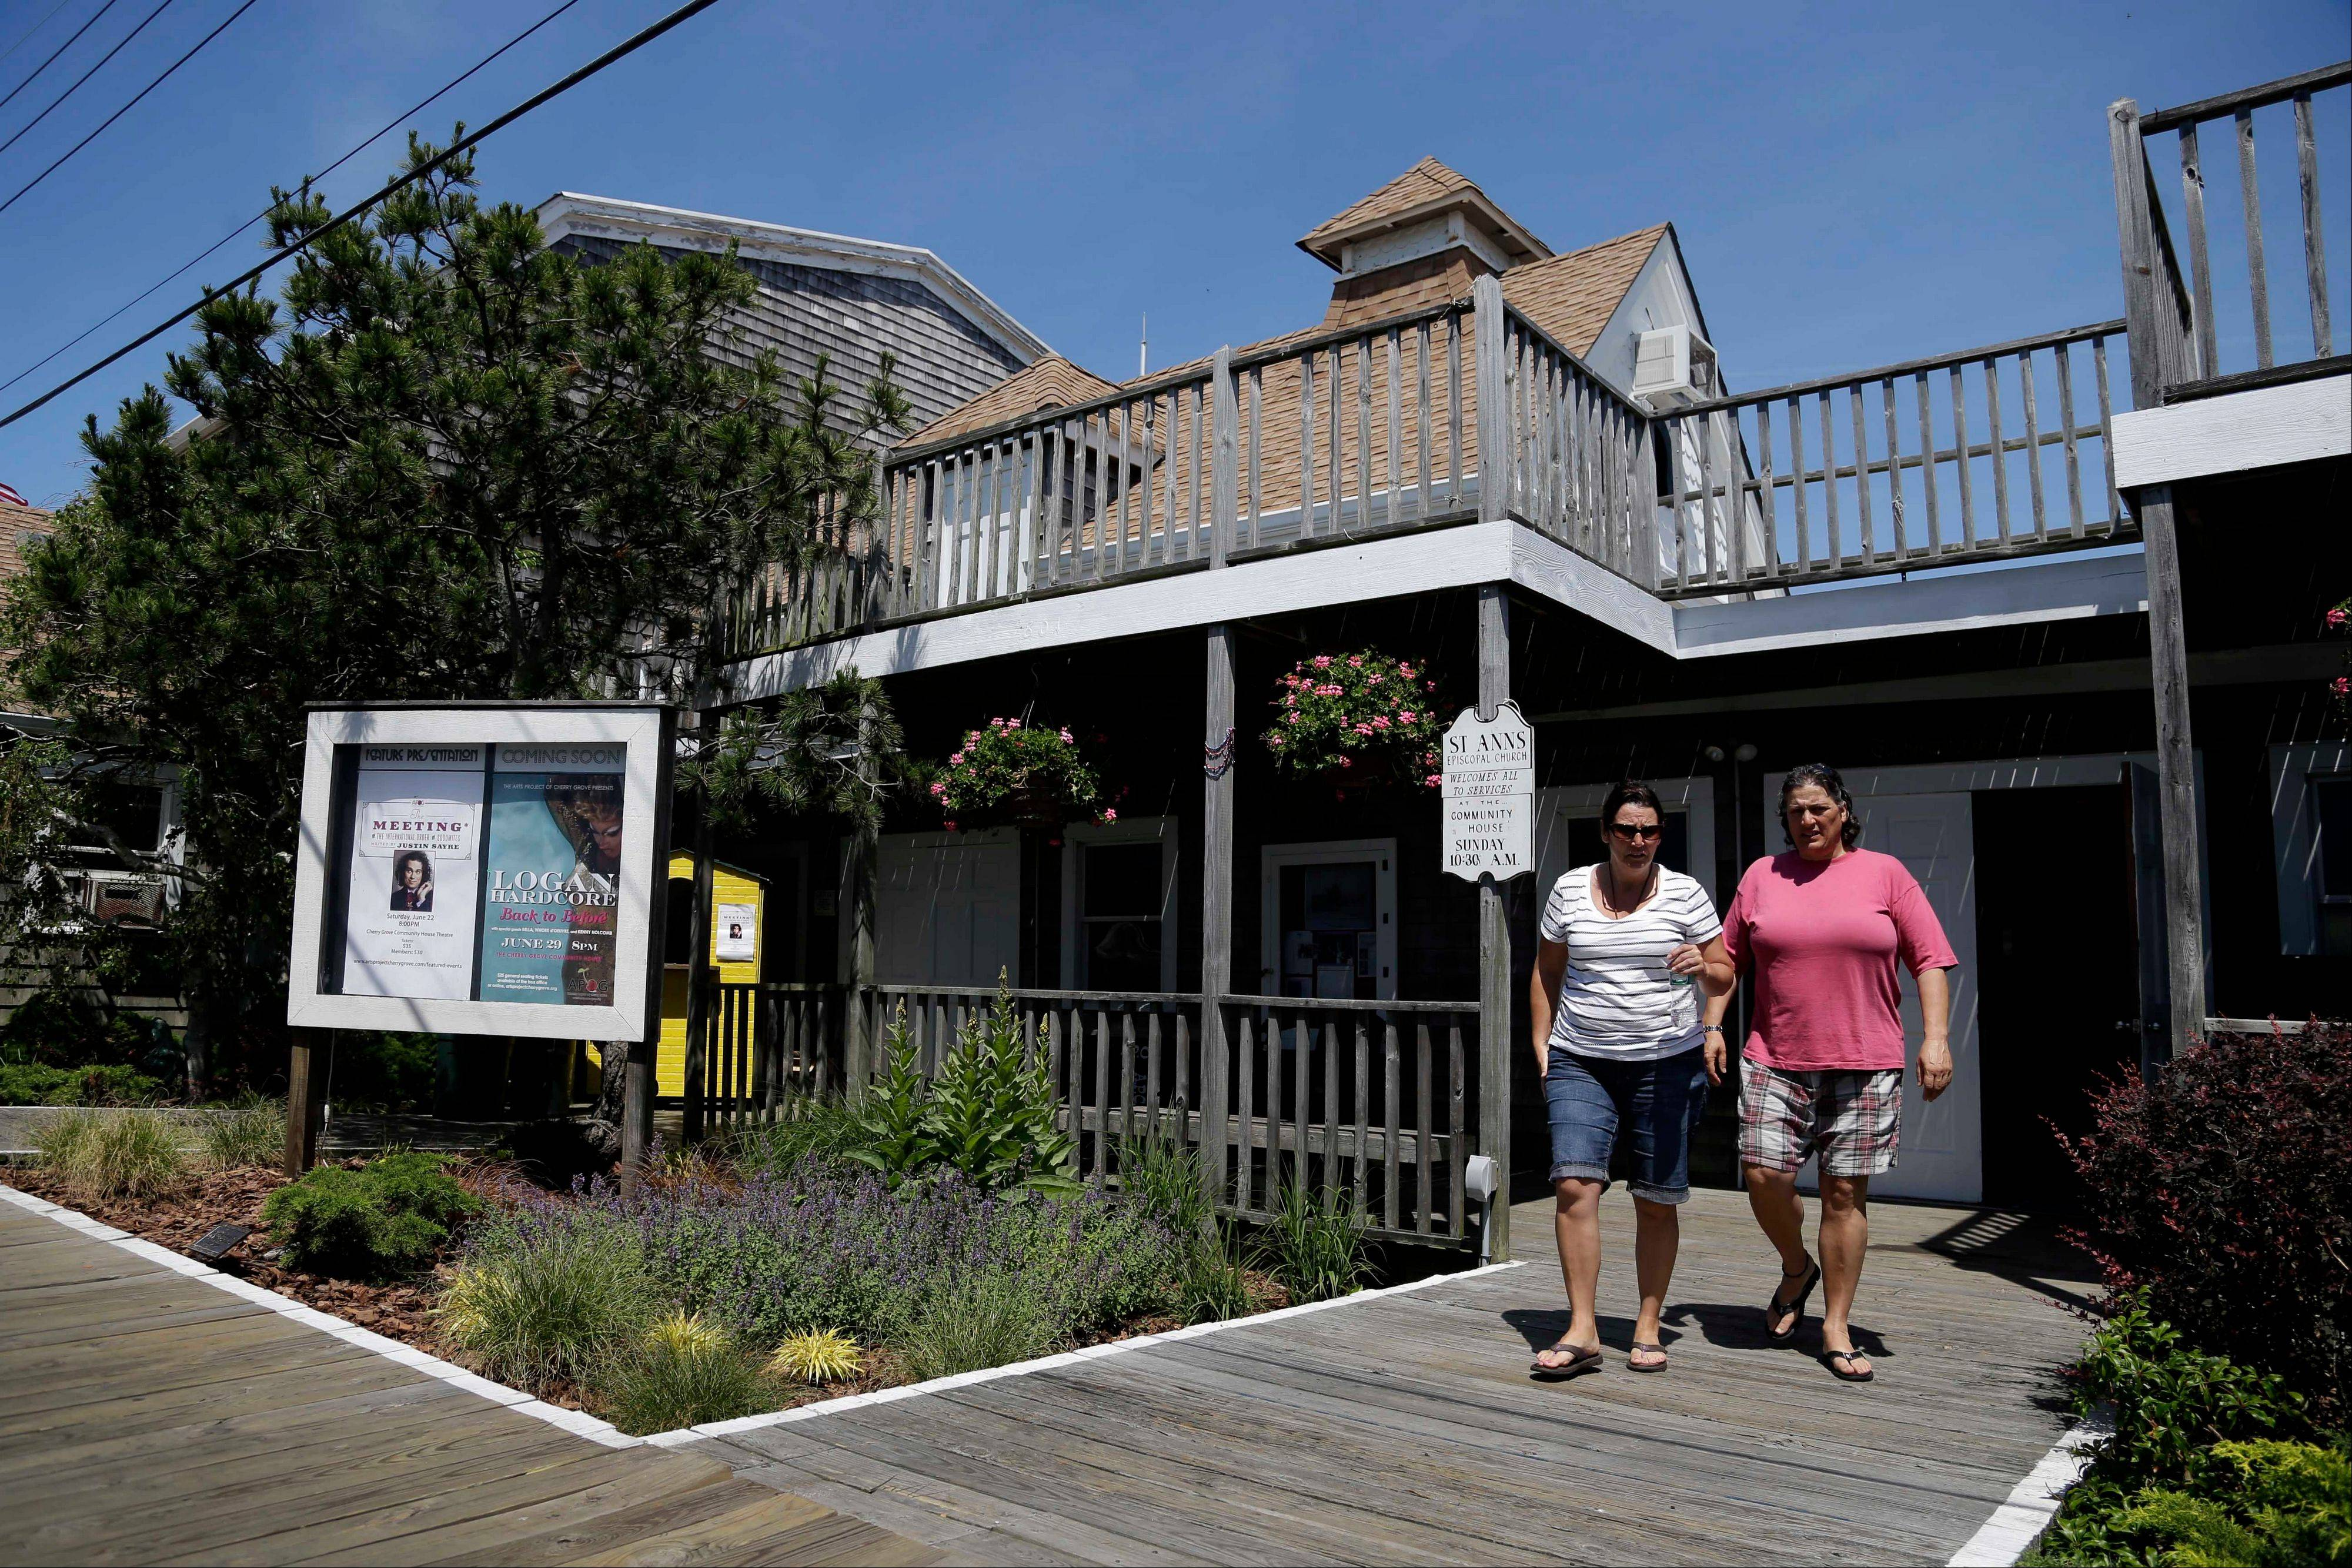 People leave a Sunday morning church service at the Cherry Grove Community House and Theater on Fire Island in Cherry Grove, N.Y. Residents of Cherry Grove are celebrating the addition of the theater to the National Register of Historic Places.